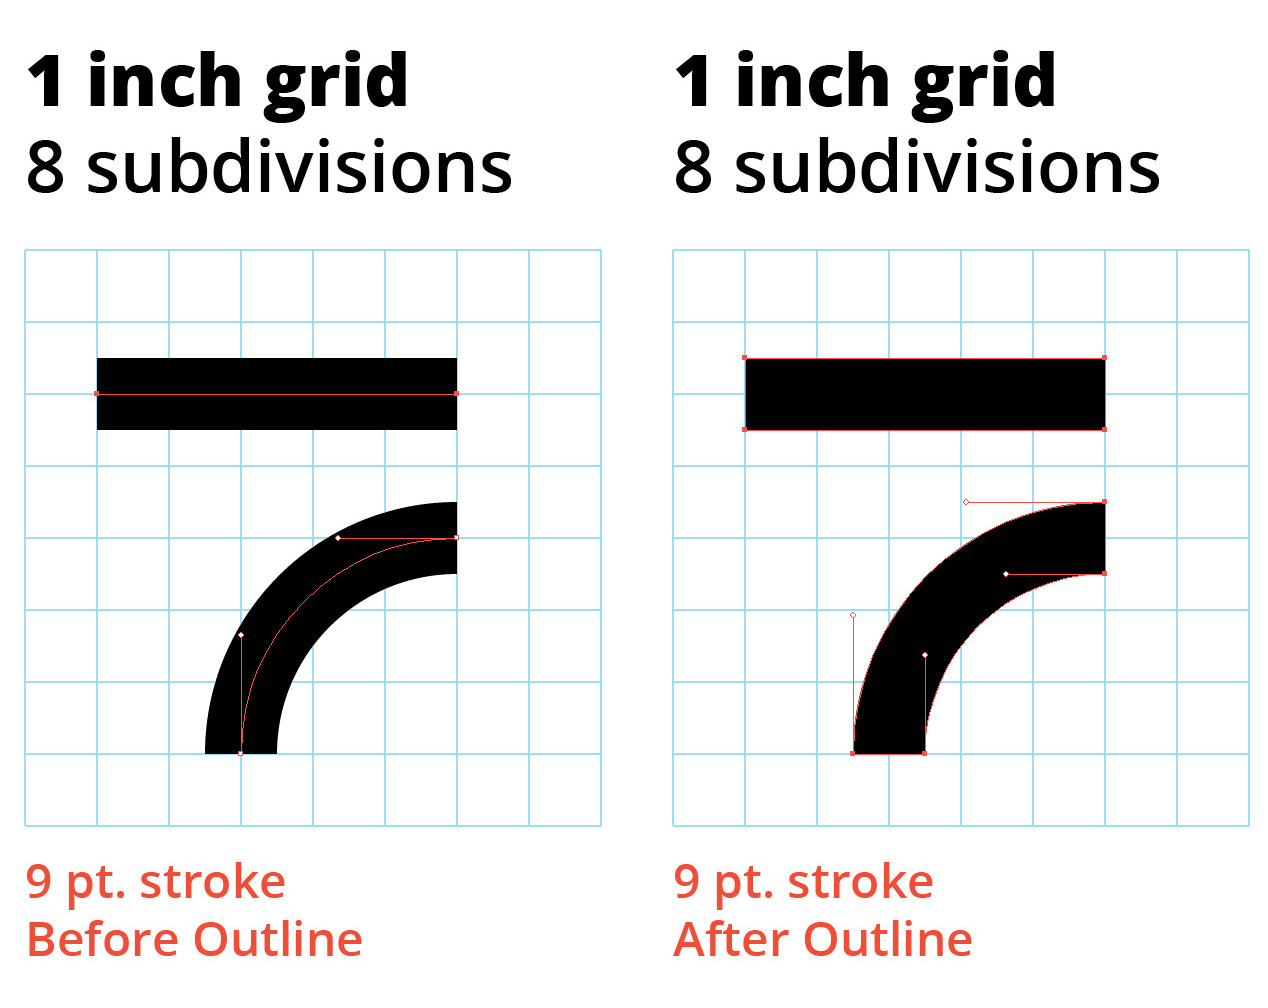 This example illustrates why you either need to double your grid subdivisions or your stroke weight. Use the arc tool (hidden behind the line tool in Adobe Illustrator) to create quarter-circle arcs.